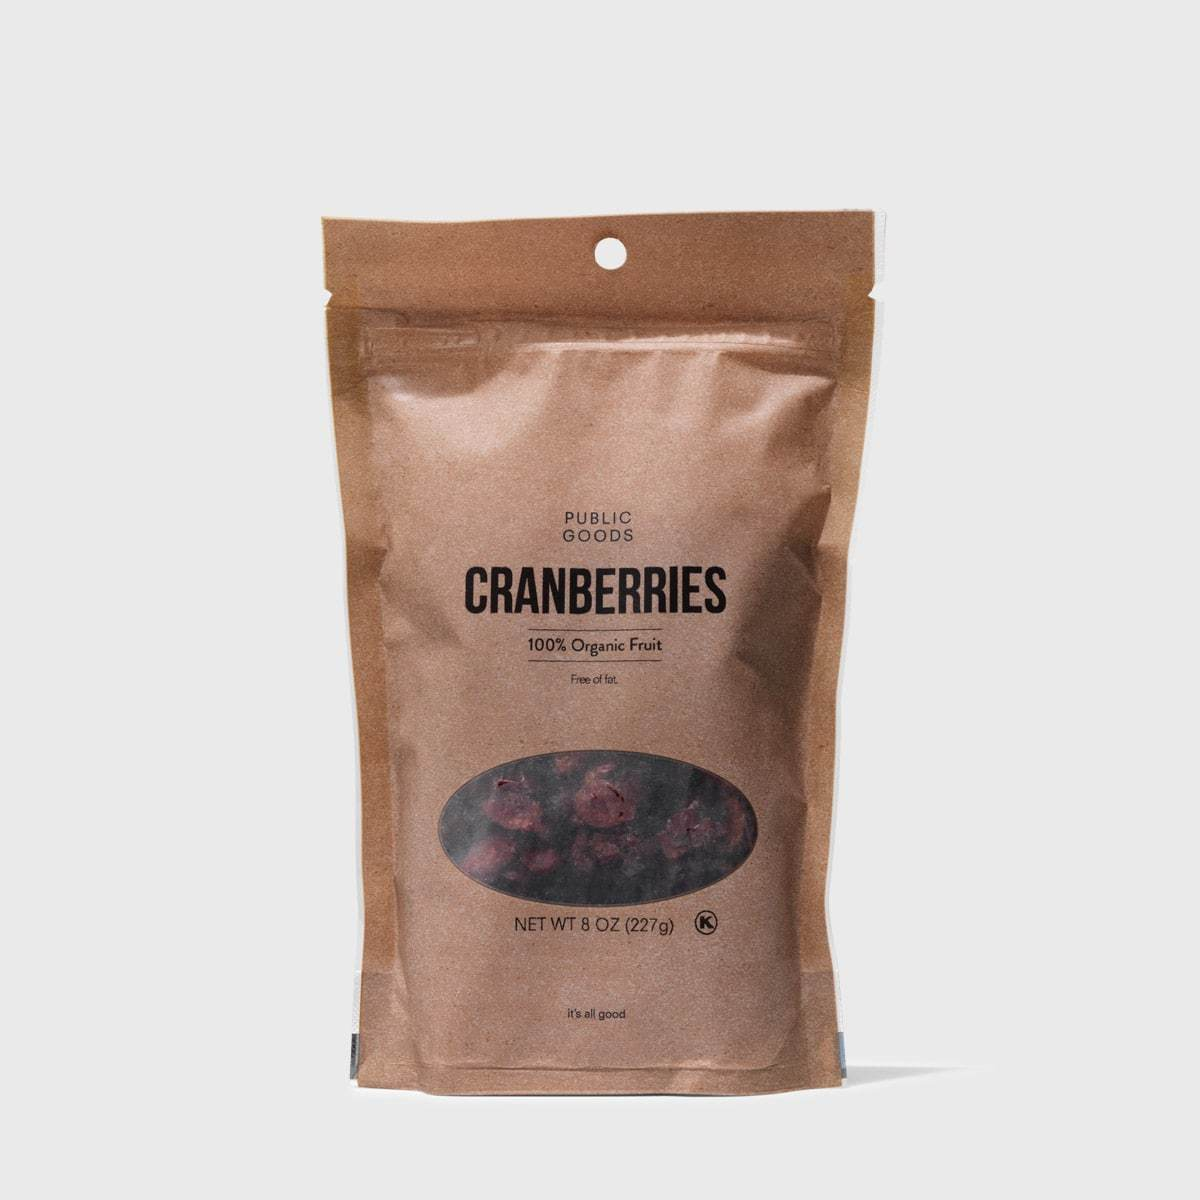 bag of organic dried cranberries